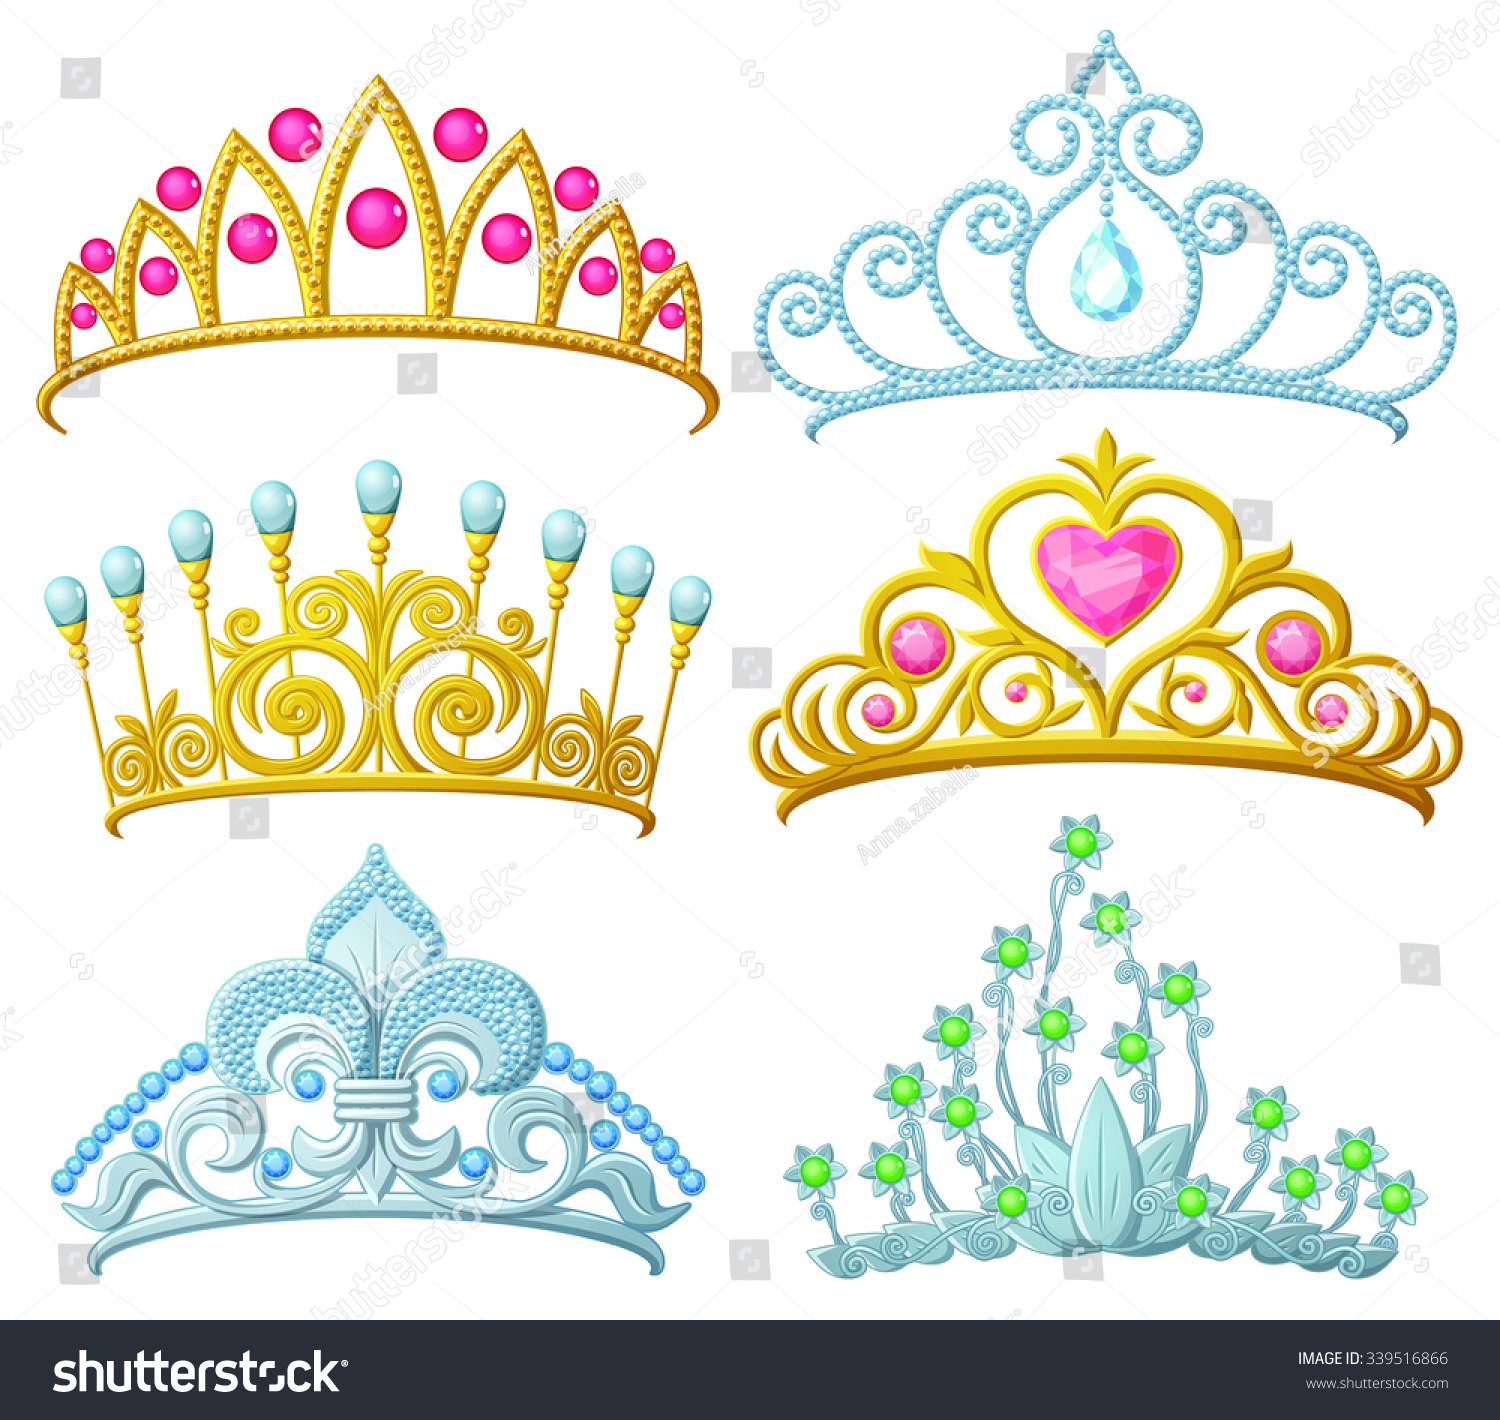 Set Of Princess Crowns Tiara Isolated On White Vector Illustration